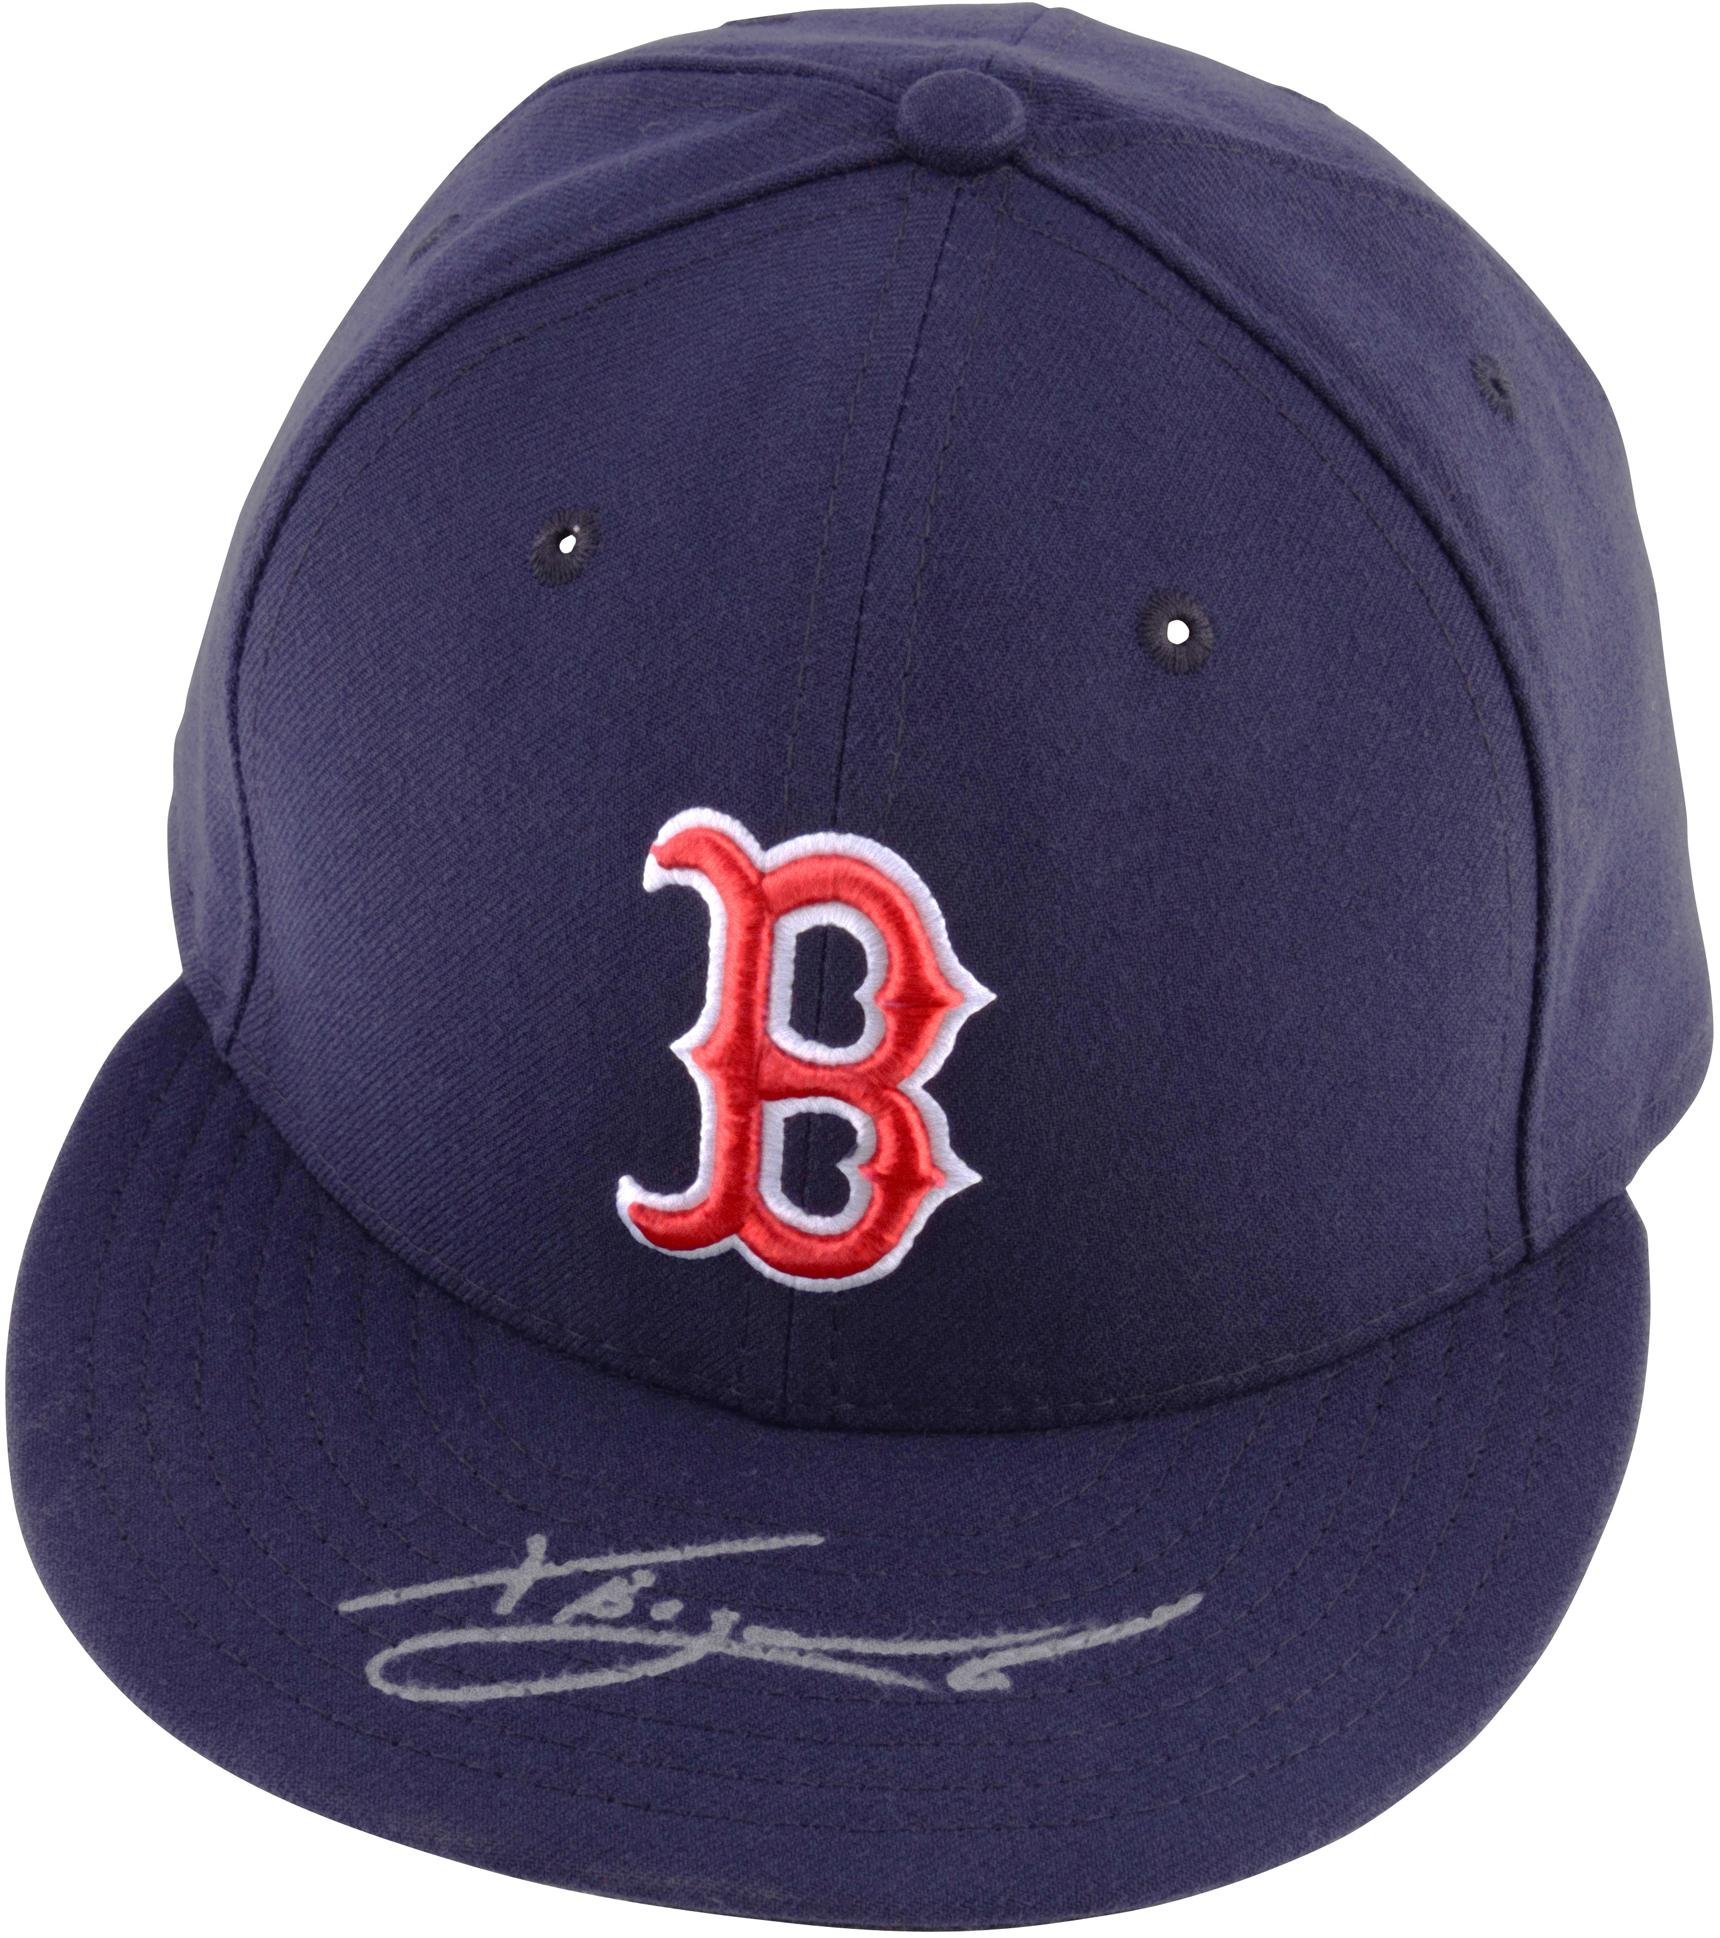 Get Quotations · Xander Bogaerts Boston Red Sox Autographed Navy New Era  Cap - Fanatics Authentic Certified - Autographed 09d6e7b16